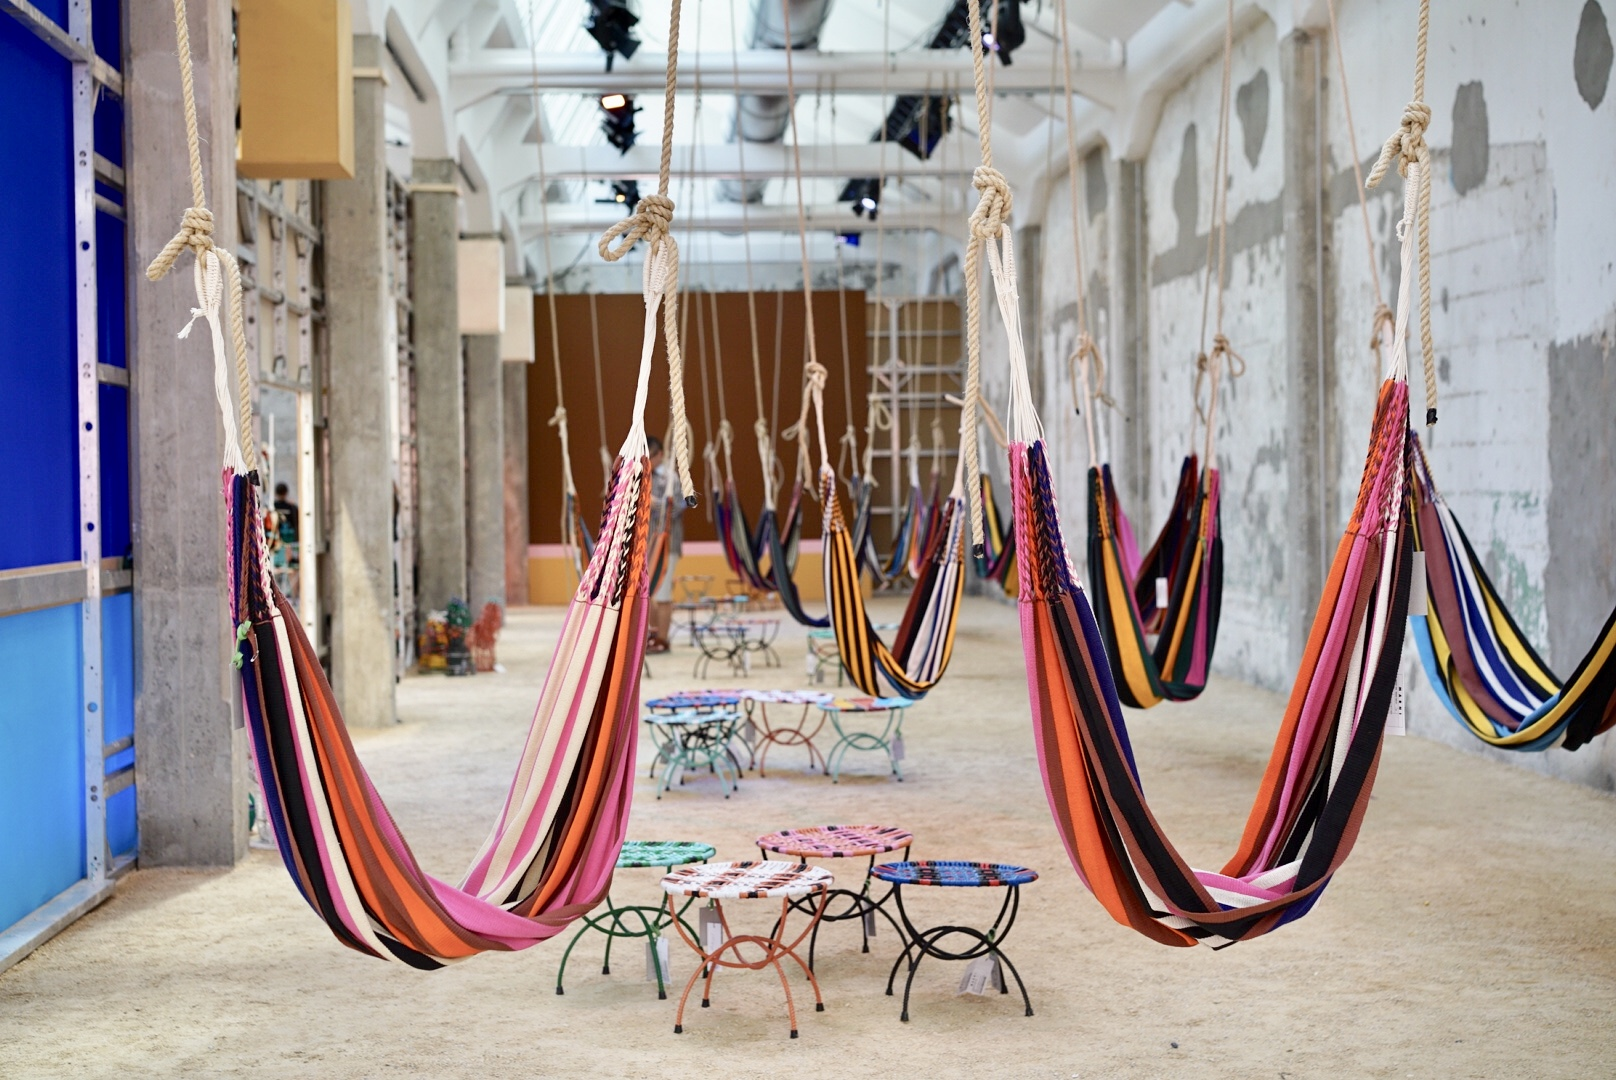 Marni La Vereda, part of the 2018 Fuorisalone during Milan Design Week.